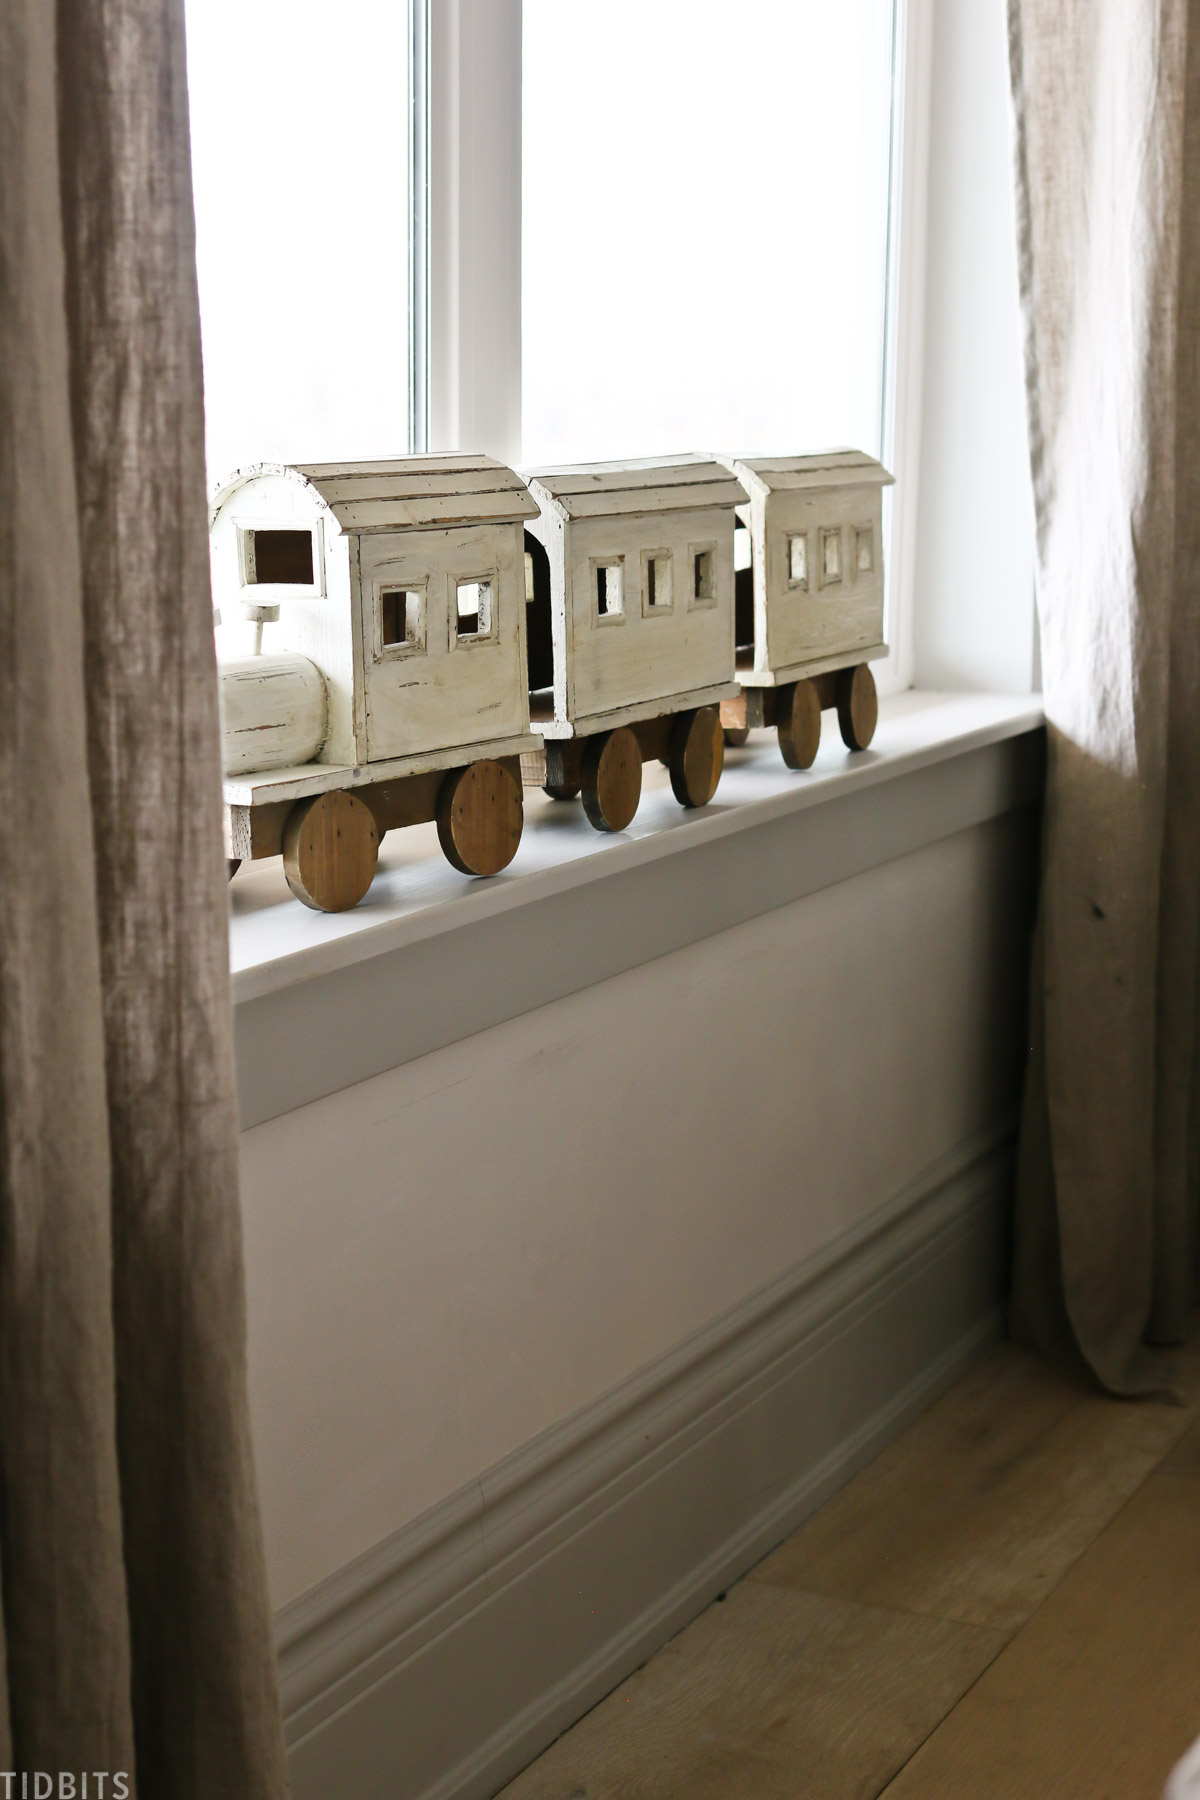 wooden toy chain placed on windowsill